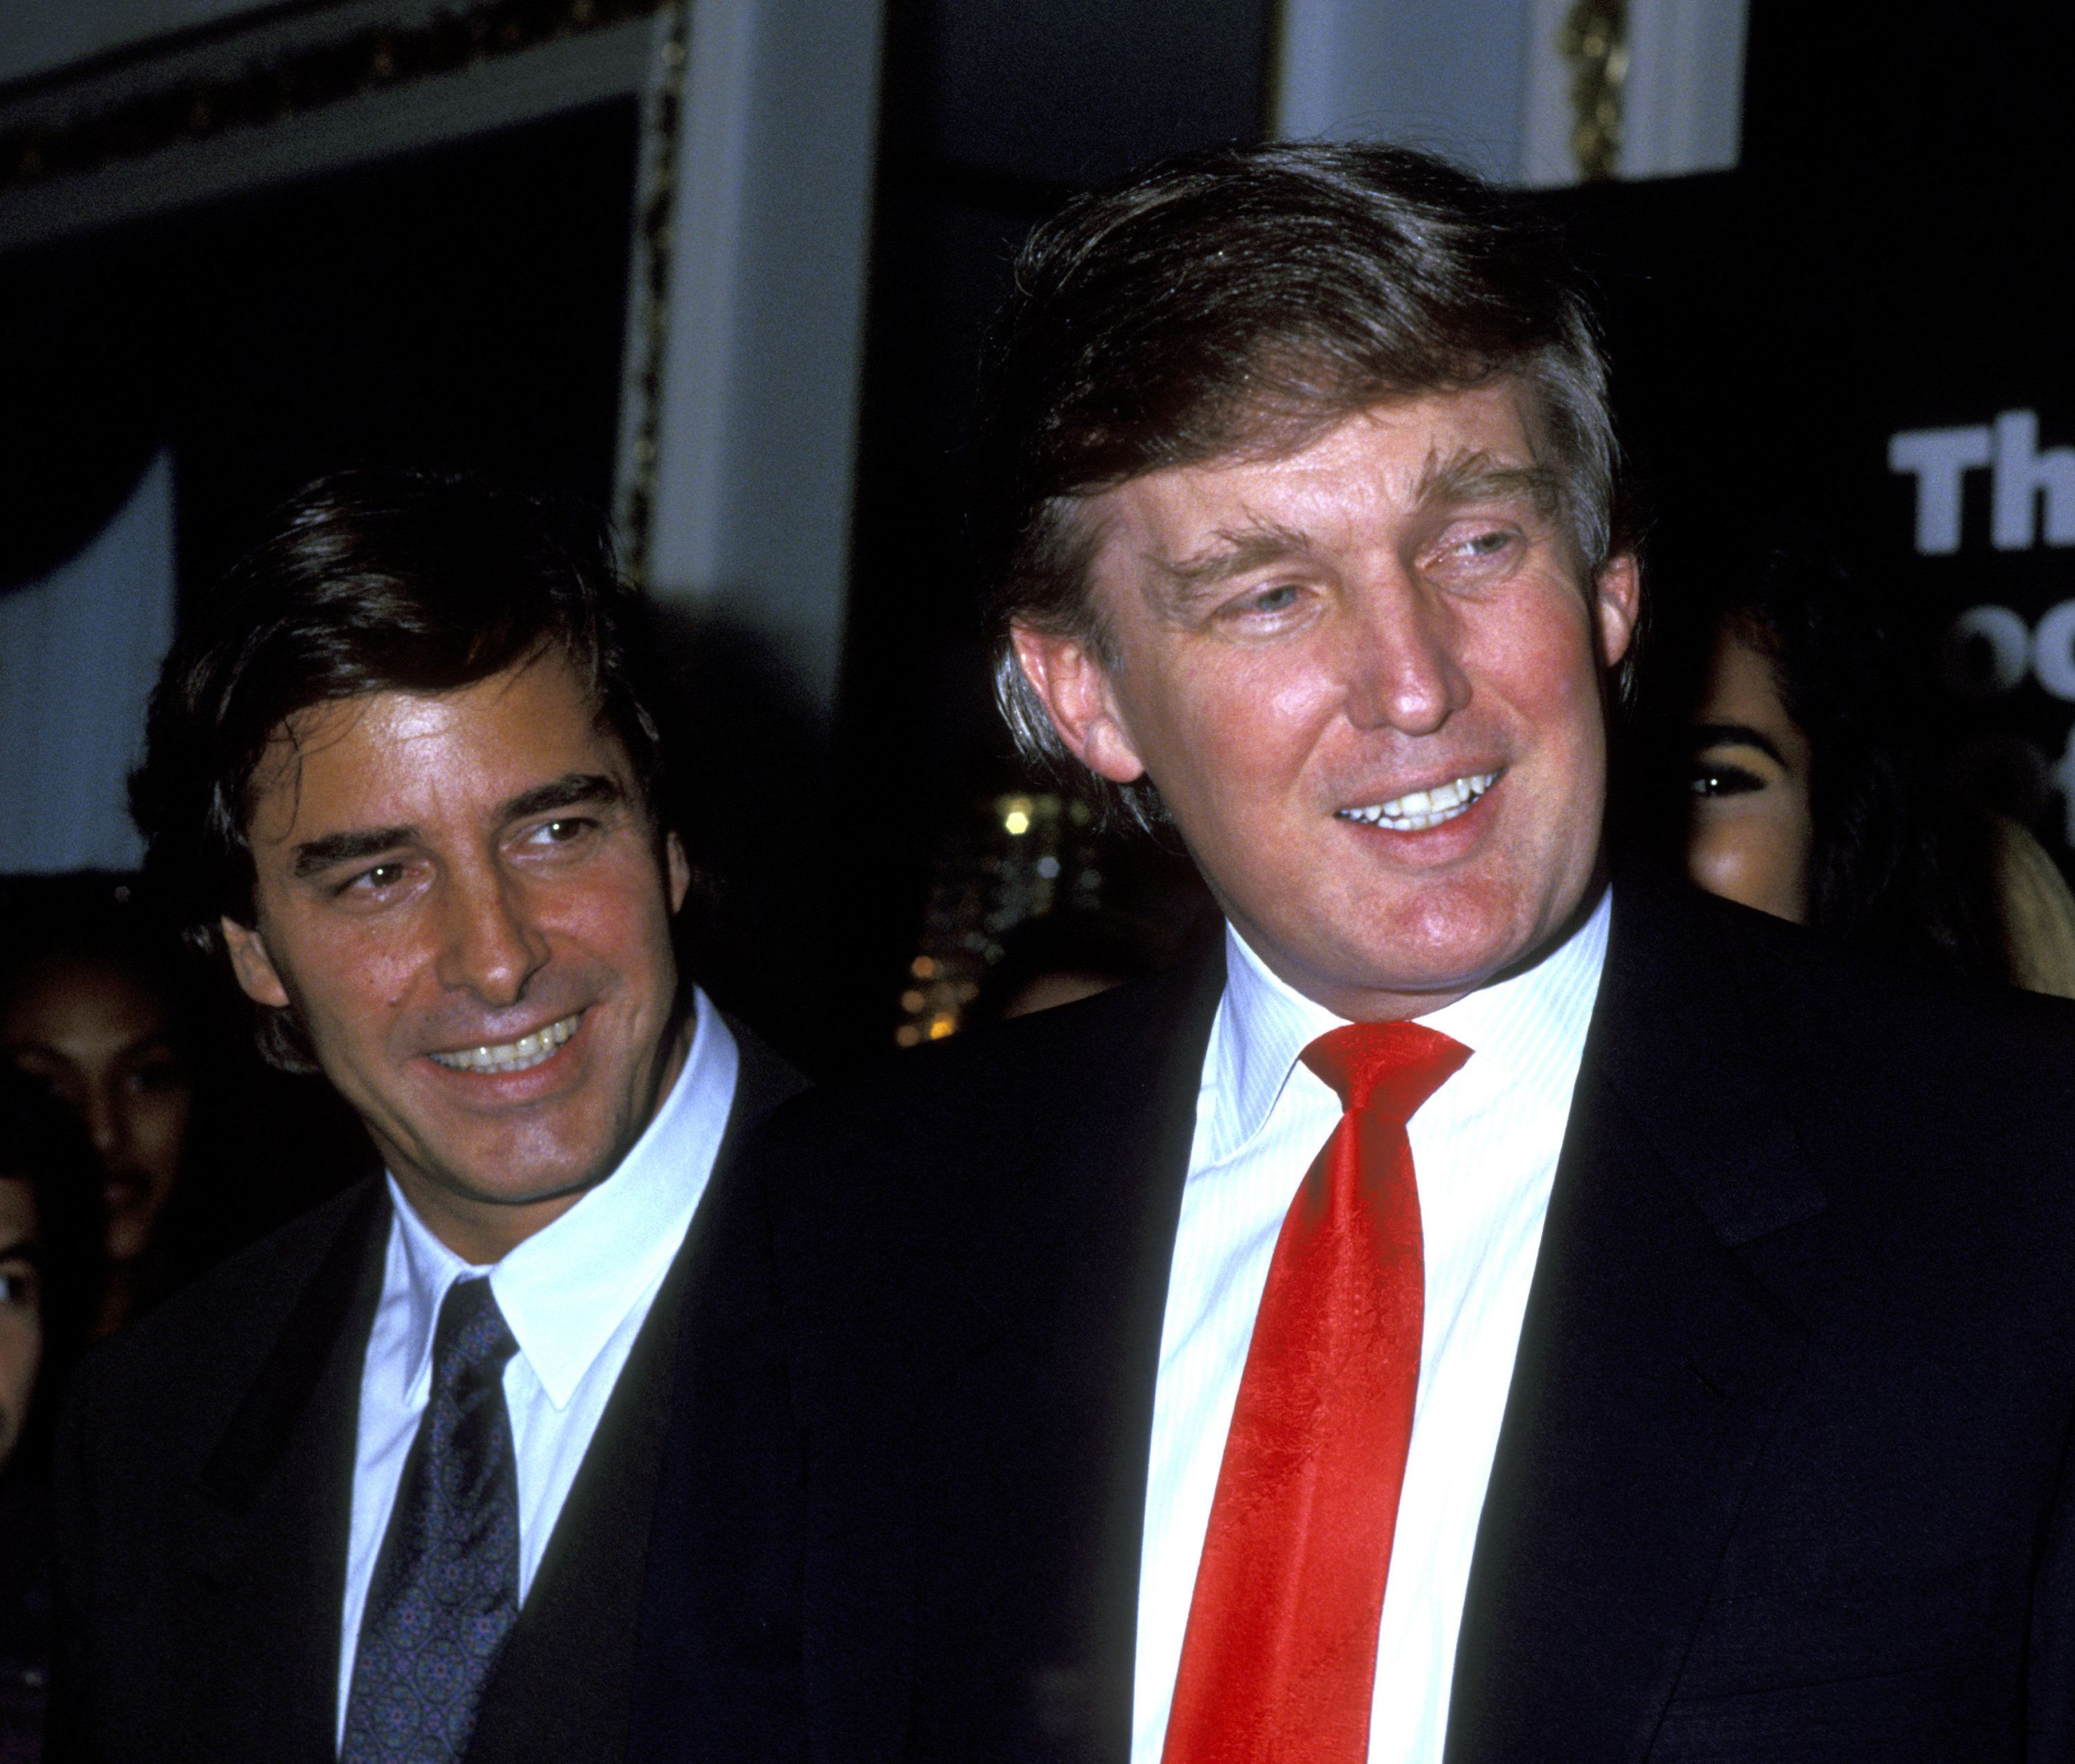 Donald Trump (right) pictured with modeling agent John Casablancas in 1991. One woman said she attended a dinner with bo